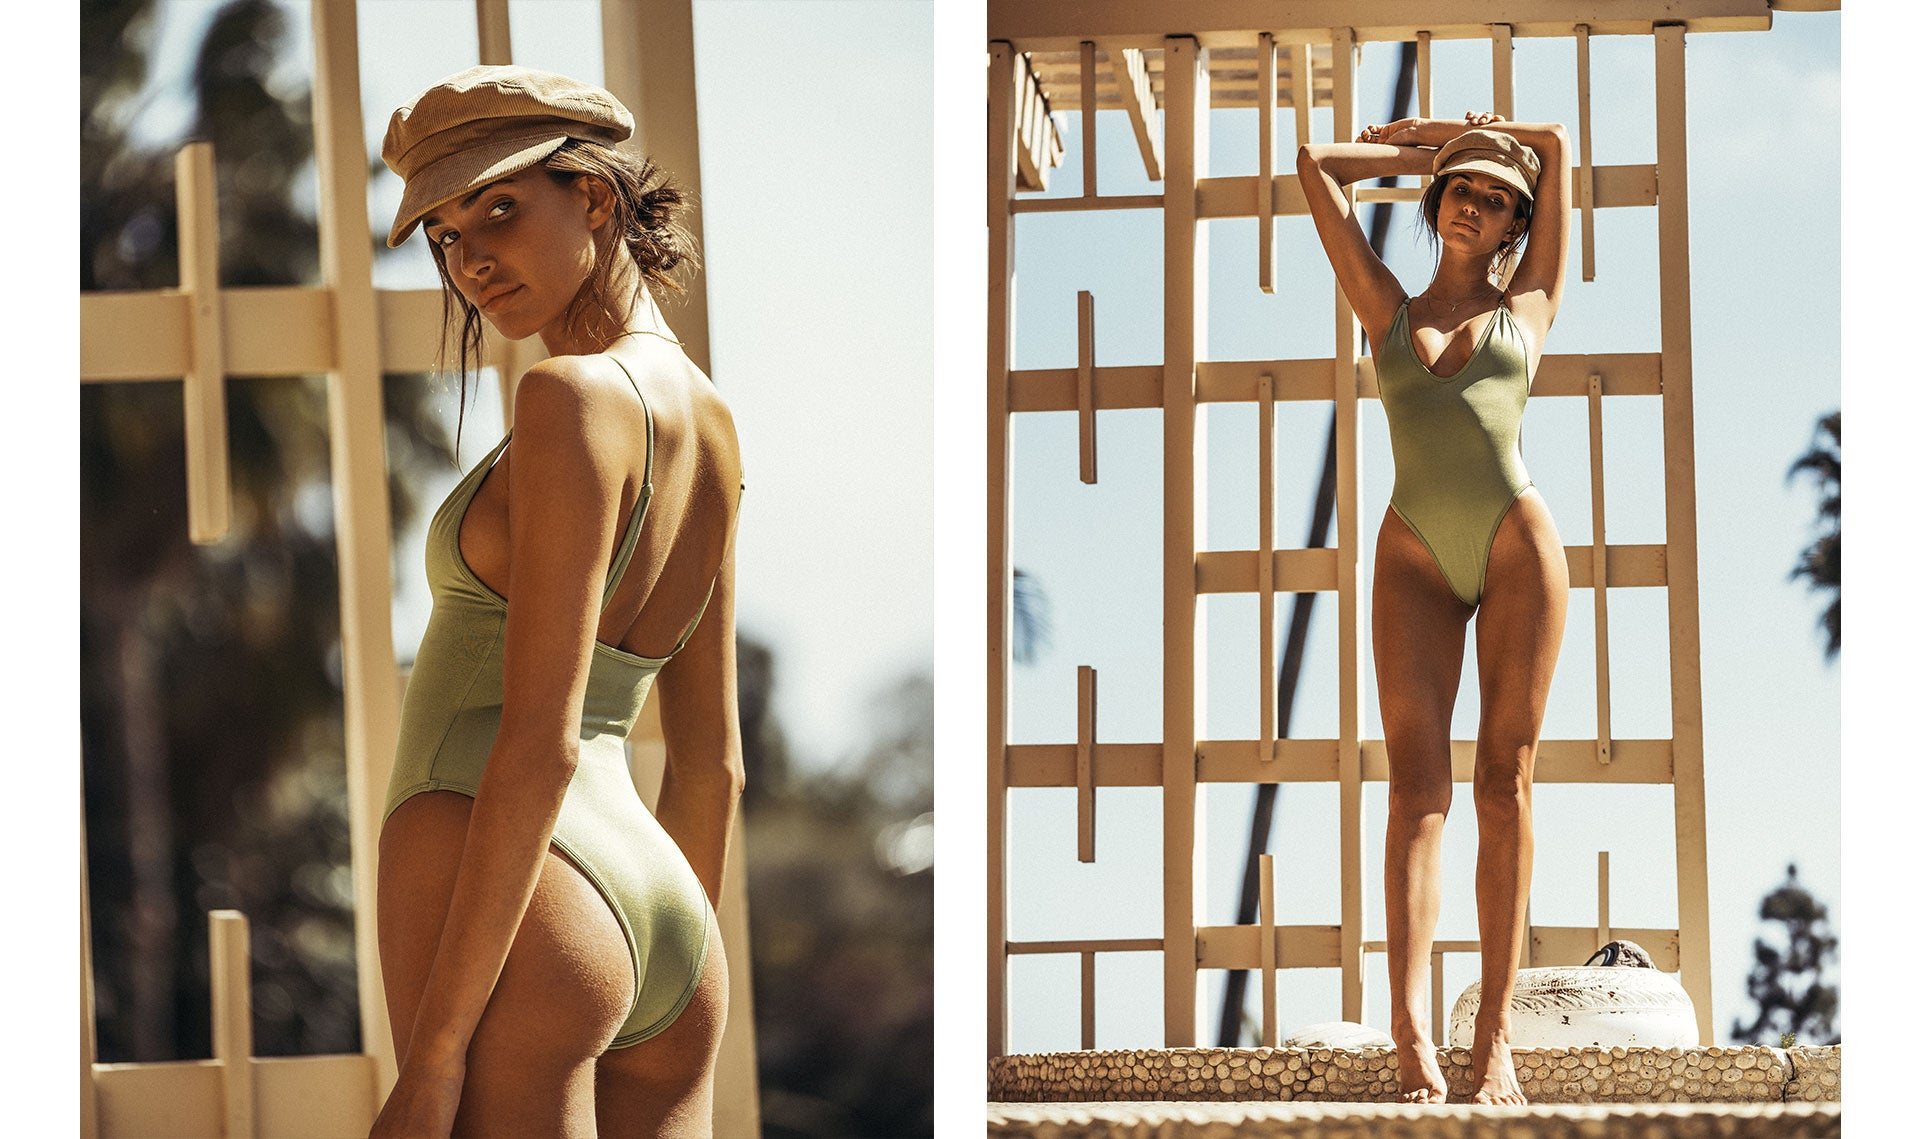 Charlotte D'Alessio wearing the So Chic Minty Wonder One Piece